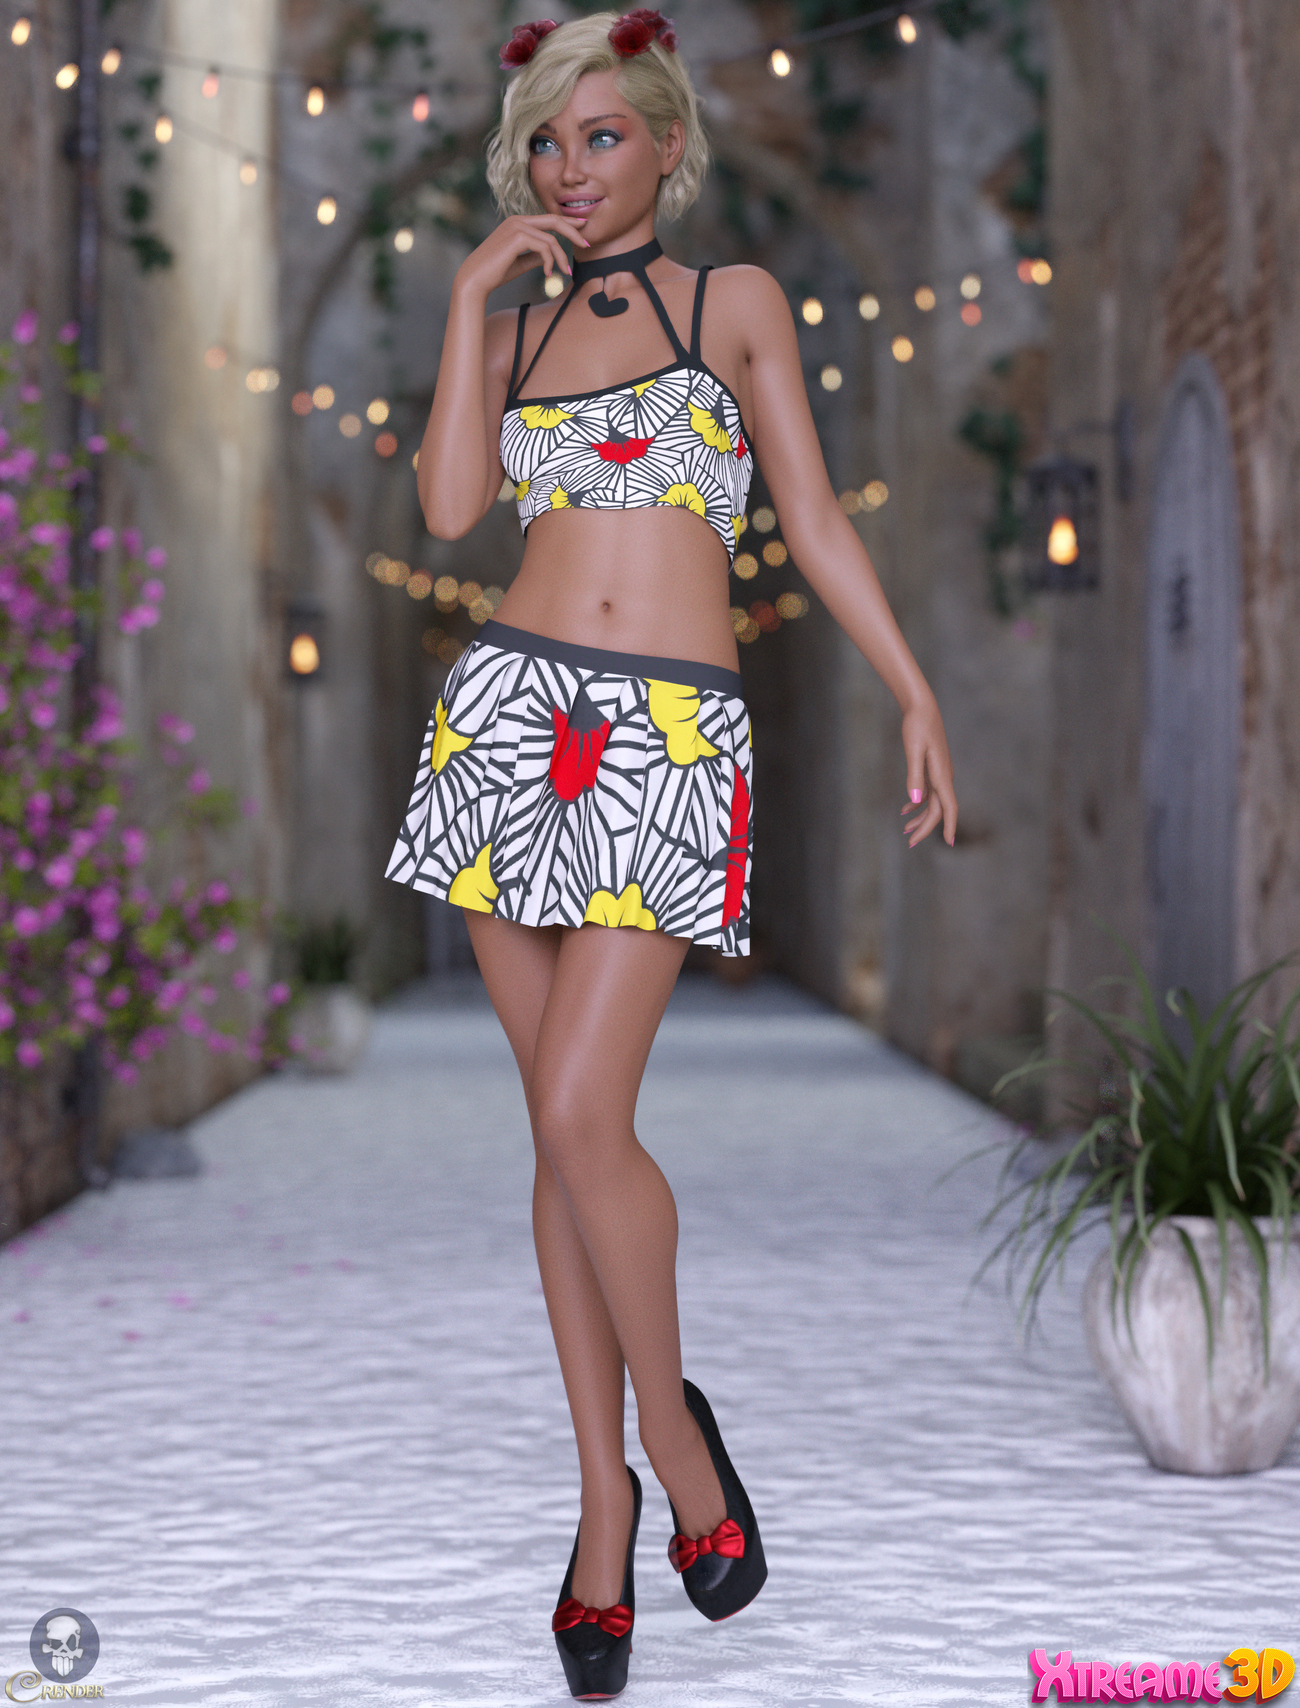 dForce Nysali Outfit for G8F by Mella_via 2 by crender